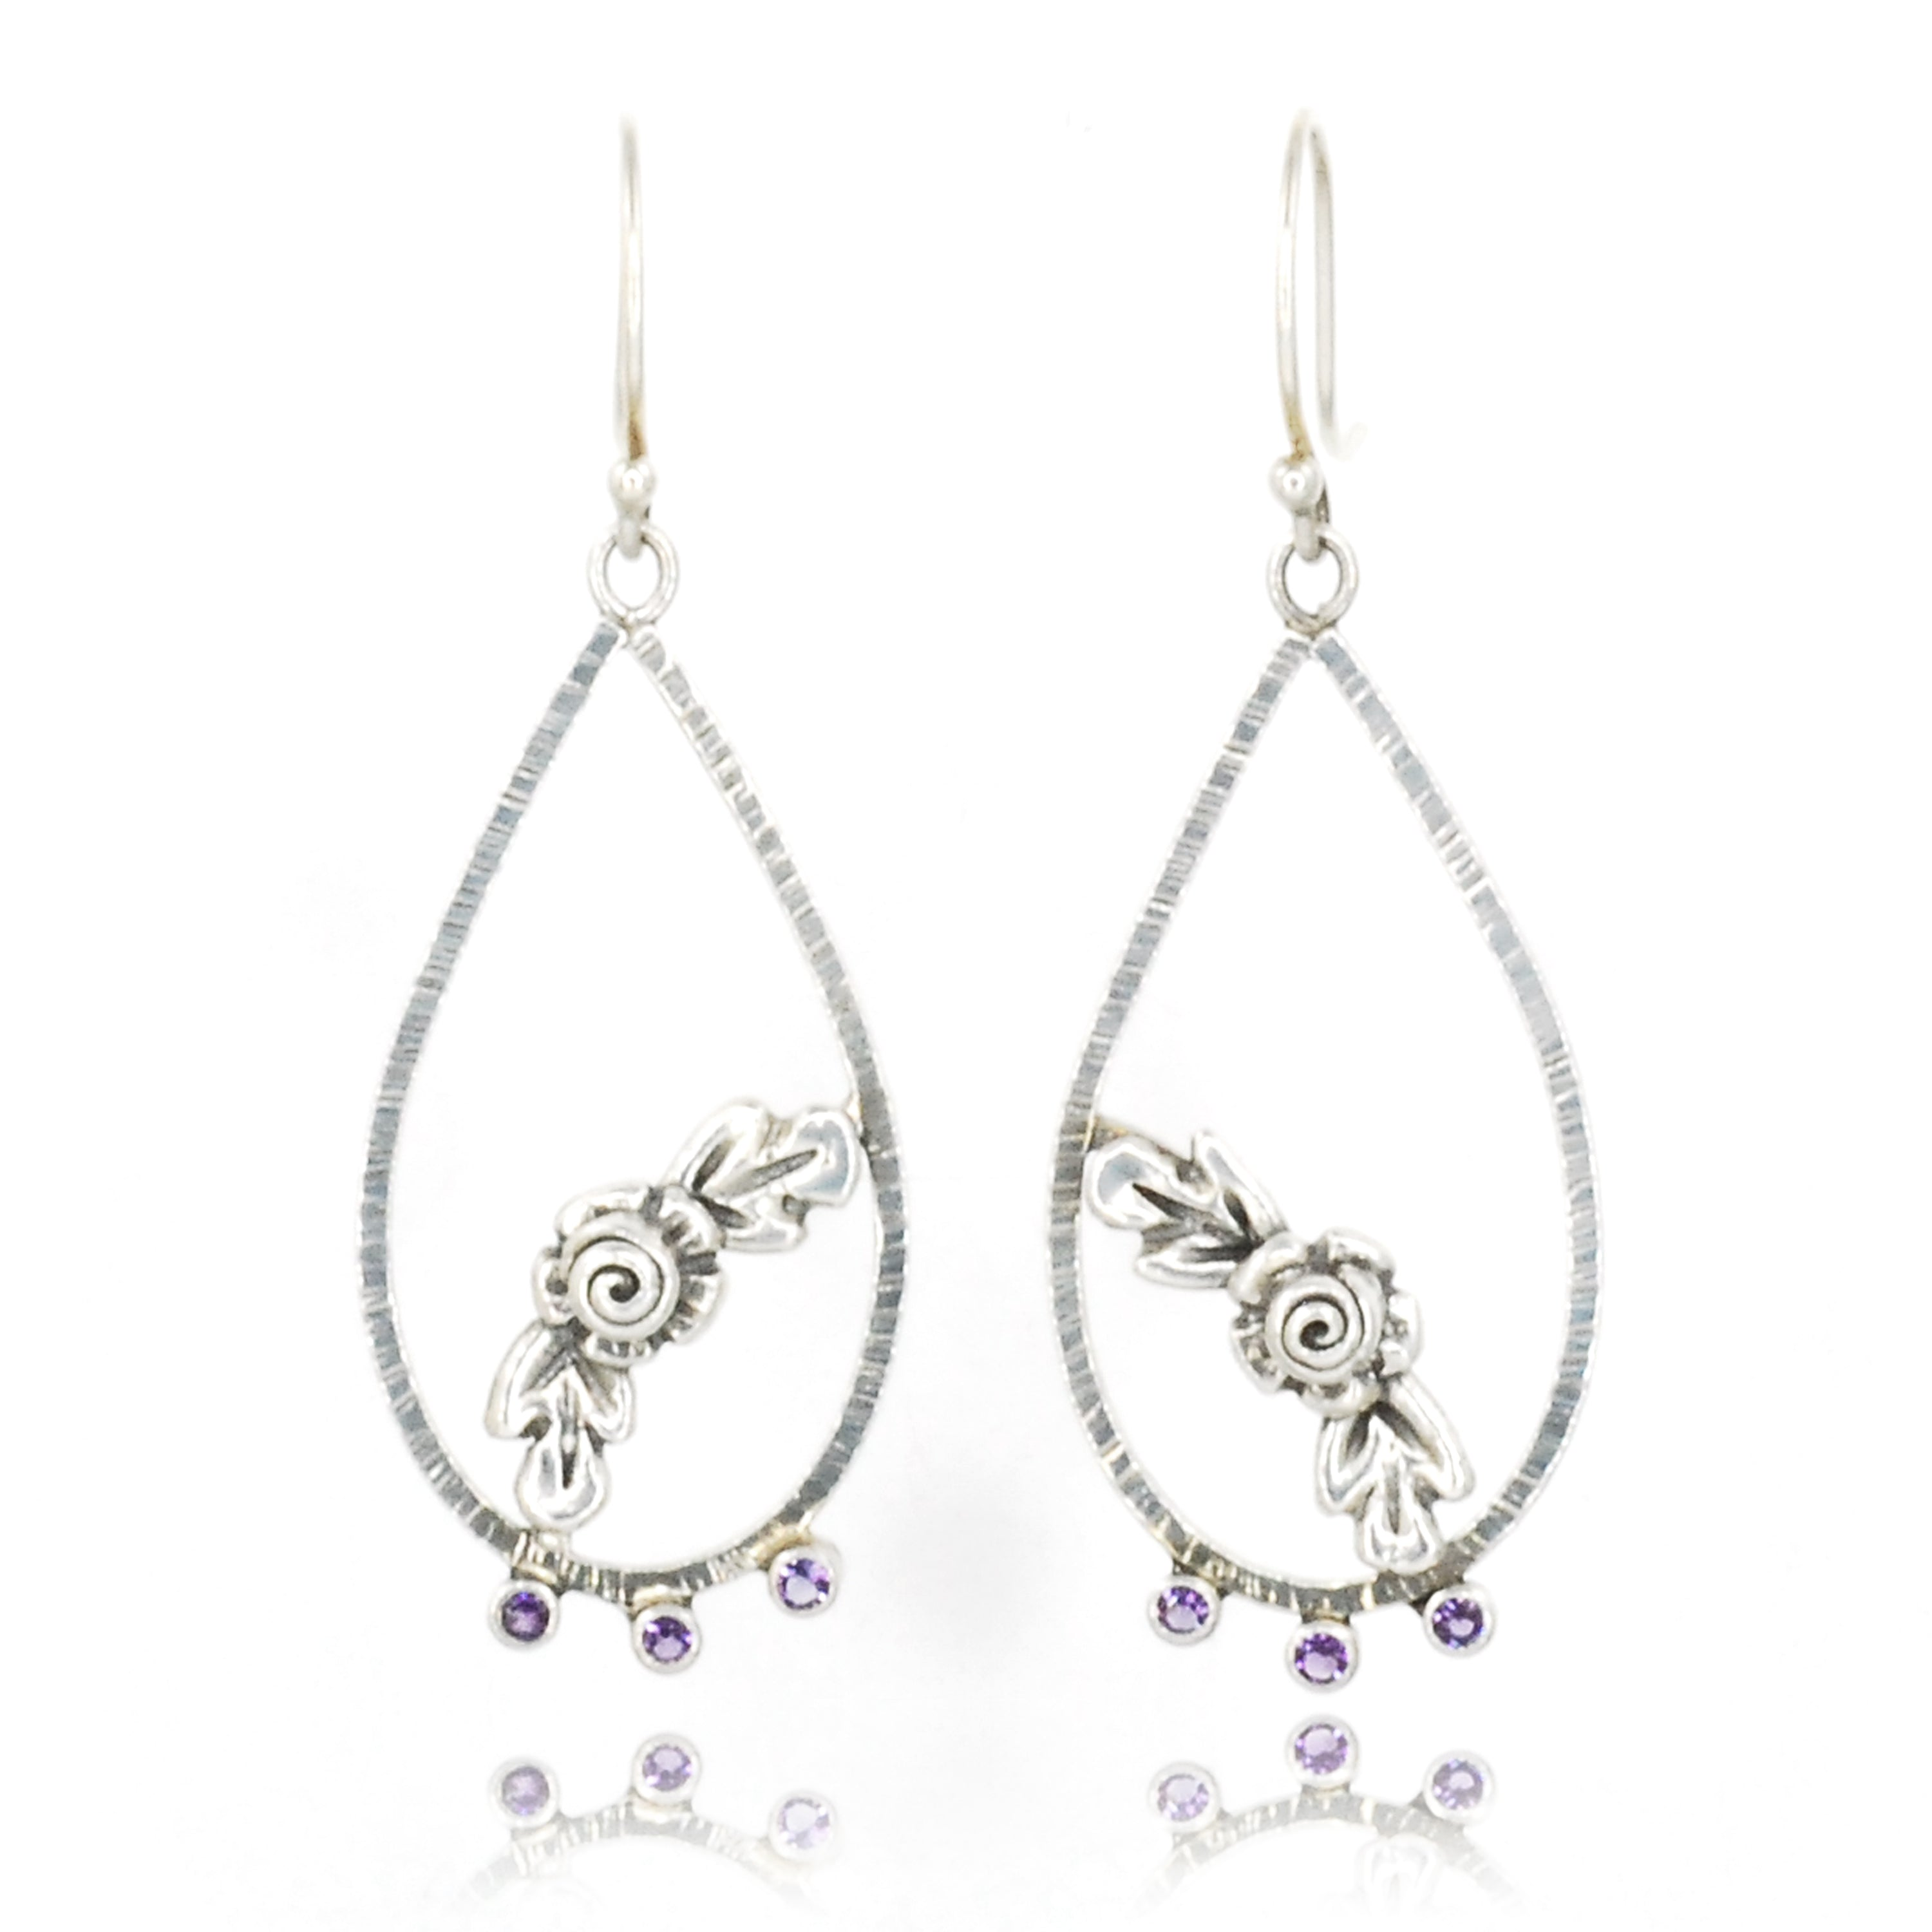 Amethyst Garland Earrings